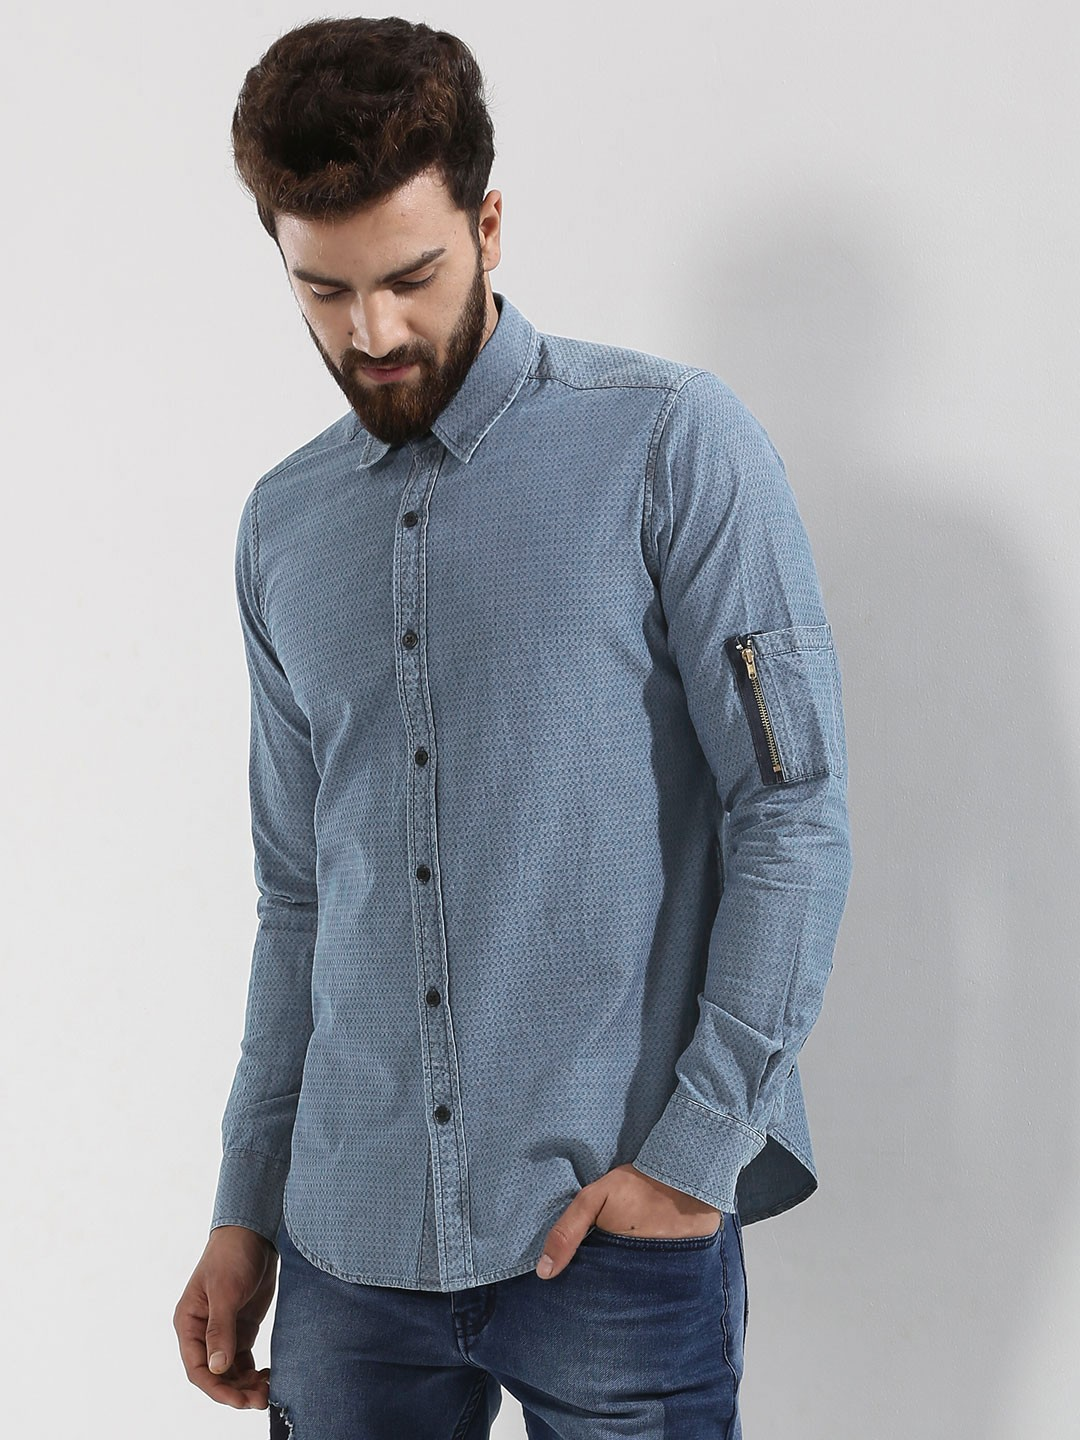 Buy Ruse Denim Shirt With Side Zipper Sleeve Pocket For